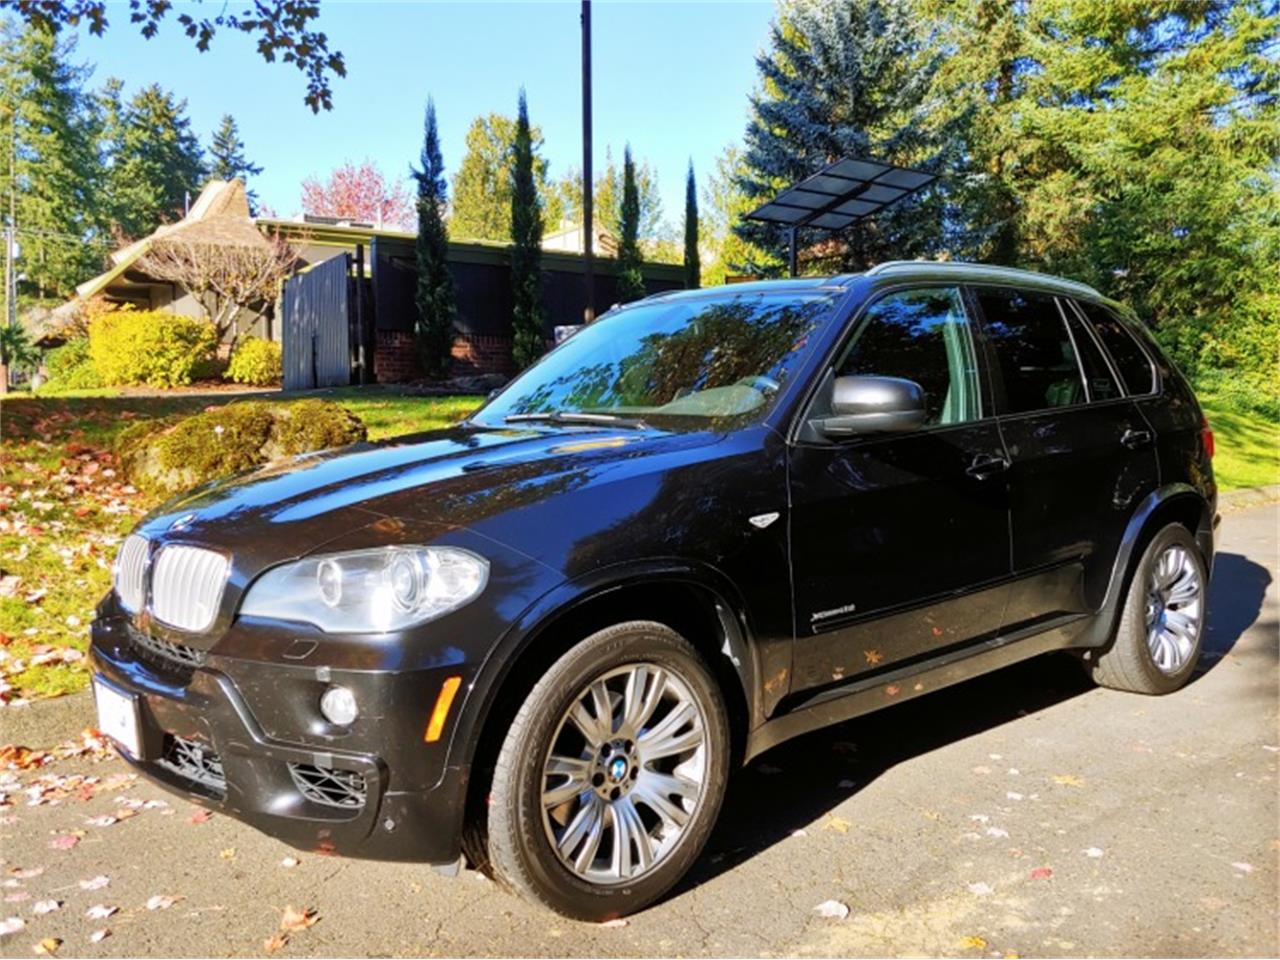 for sale at auction 2010 bmw x5 in peoria, arizona cars - peoria, az at geebo